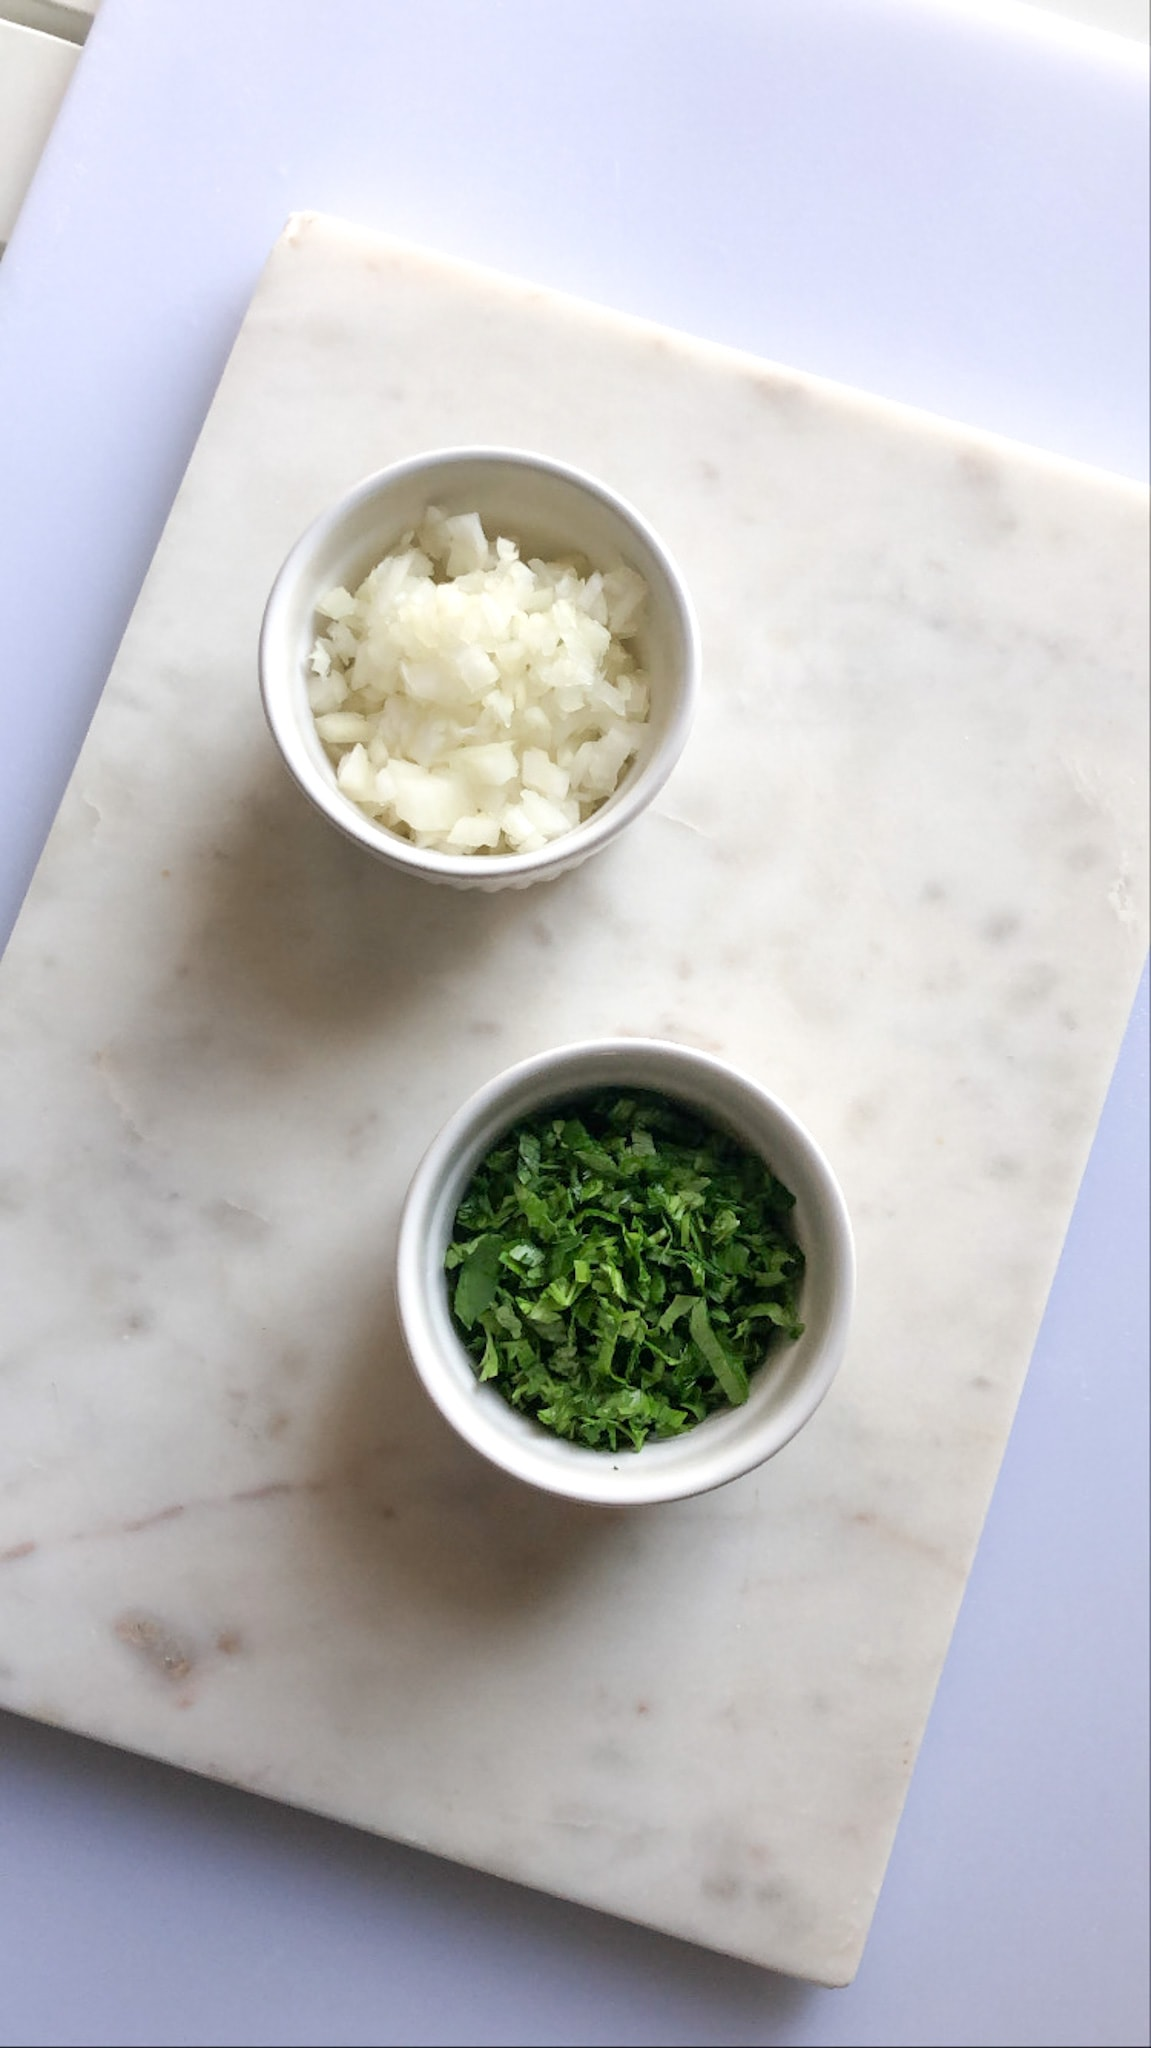 chopped onions and parsley in a bowl